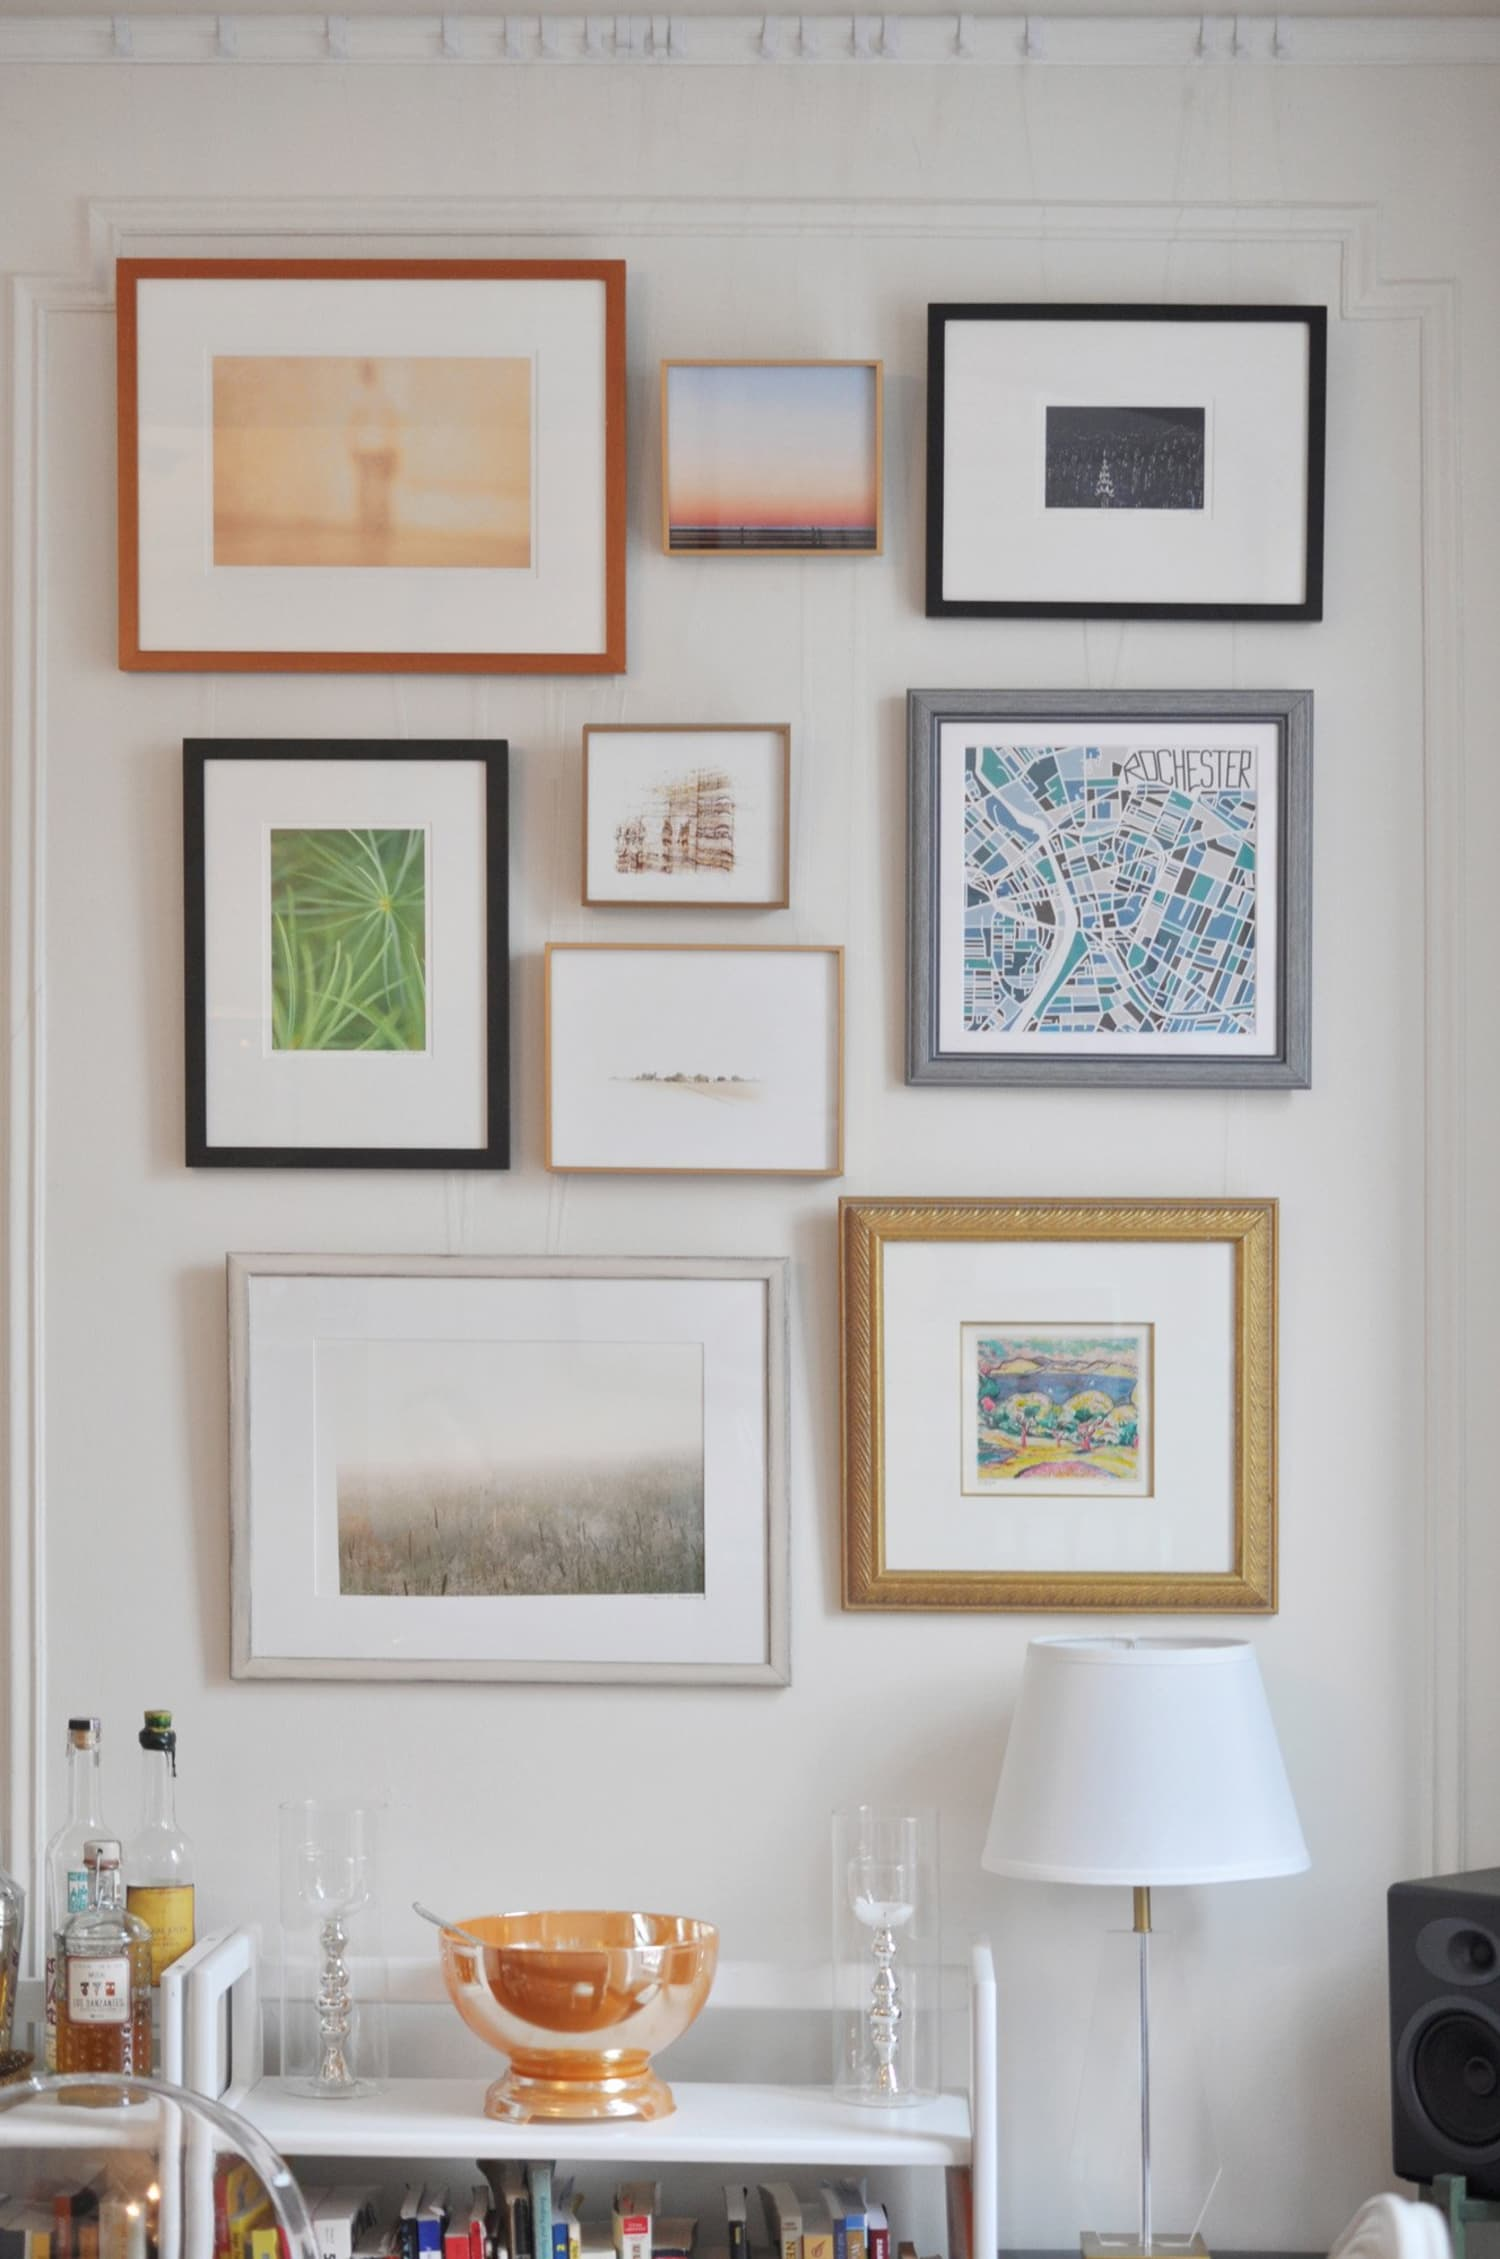 images?q=tbn:ANd9GcQh_l3eQ5xwiPy07kGEXjmjgmBKBRB7H2mRxCGhv1tFWg5c_mWT Collection of Trend How To Frame Art Prints Site @capturingmomentsphotography.net